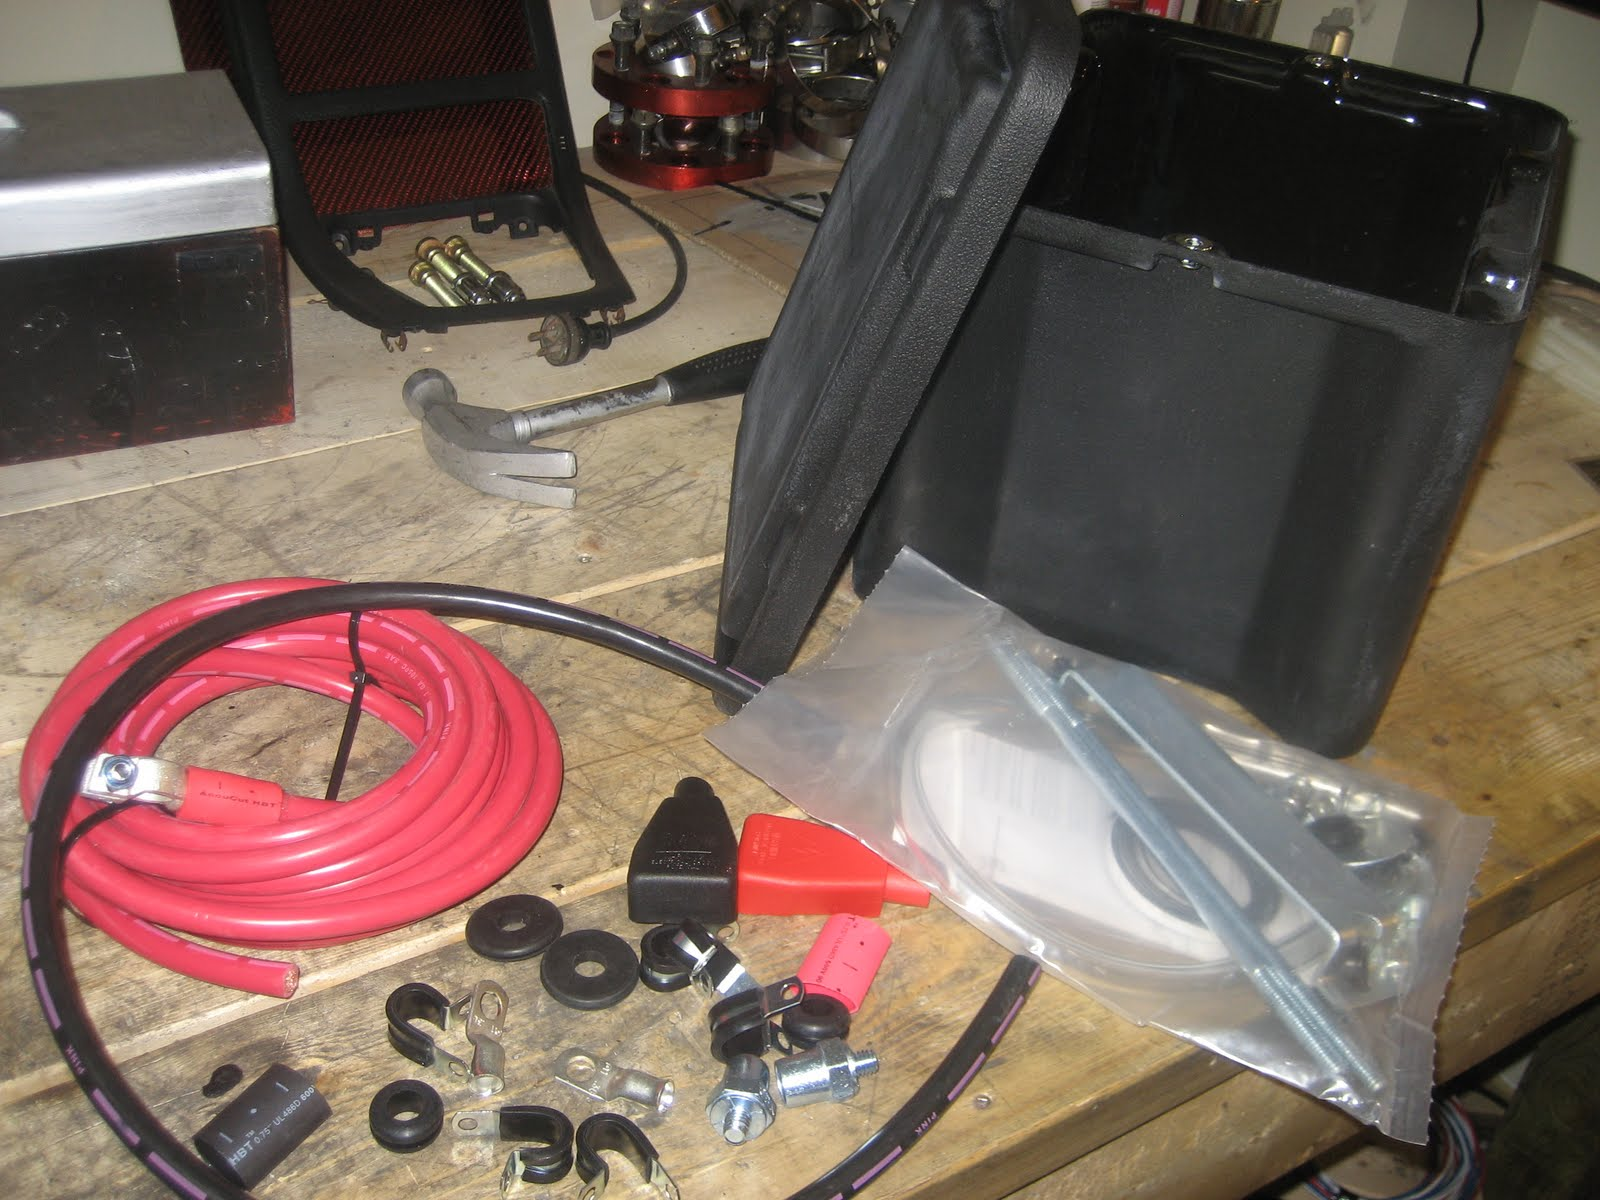 Battery Relocation To The Trunk With New Cables Wires And Ground Automotive Diagrams Author At Wiring Page Summit Racing Kit